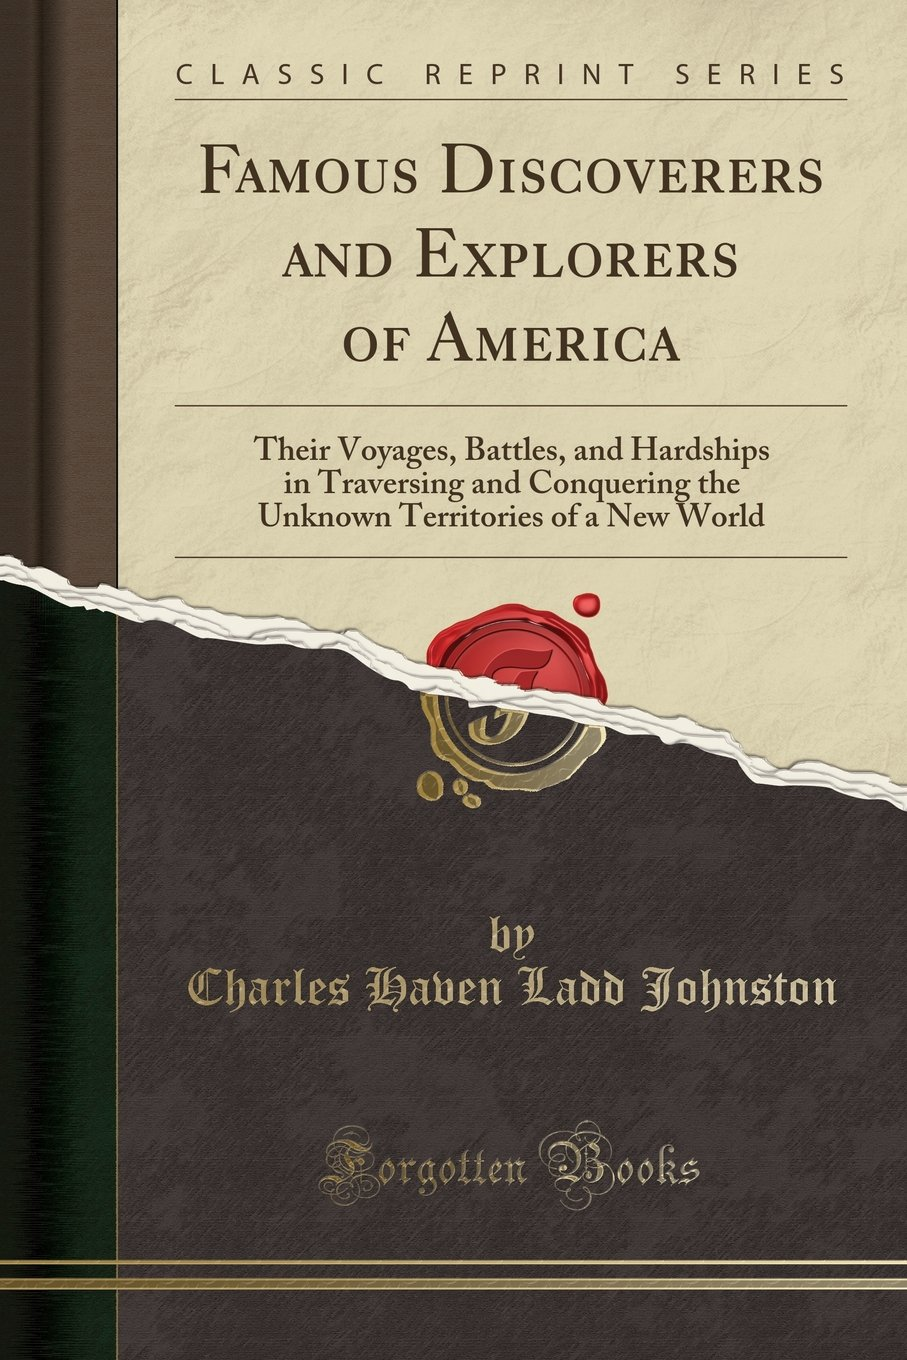 Famous Discoverers and Explorers of America: Their Voyages, Battles, and Hardships in Traversing and Conquering the Unknown Territories of a New World (Classic Reprint) PDF